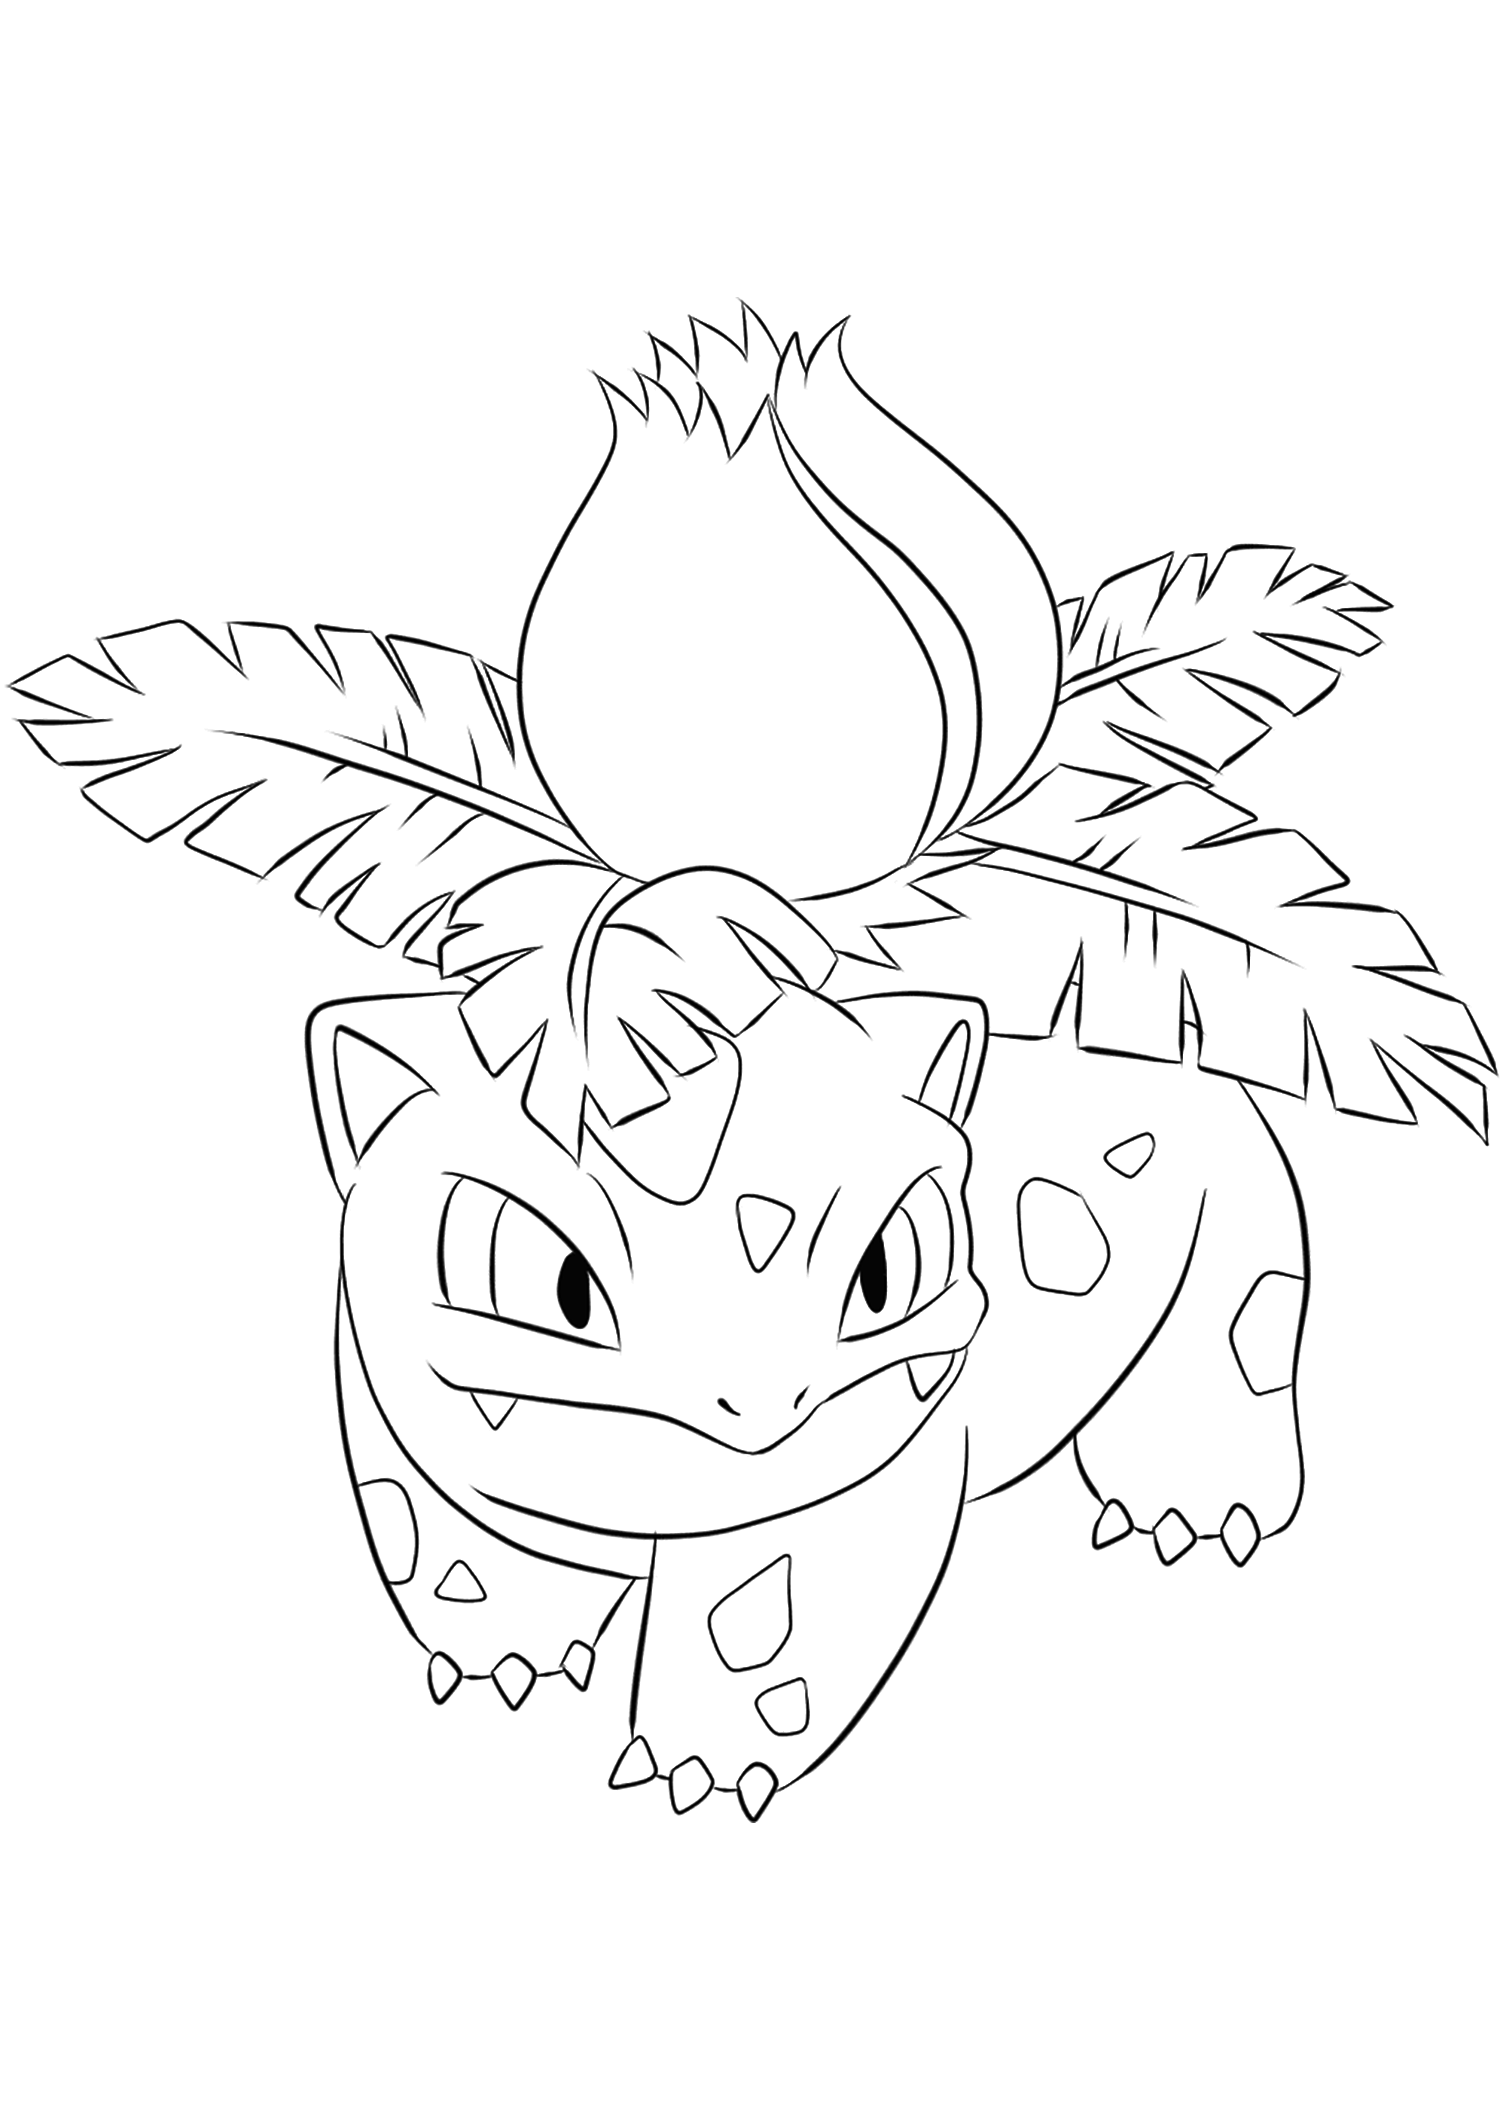 Ivysaur (No.02)Ivysaur Coloring page, Generation I Pokemon of type Grass and PoisonOriginal image credit: Pokemon linearts by Lilly Gerbil'font-size:smaller;color:gray'>Permission: All rights reserved © Pokemon company and Ken Sugimori.